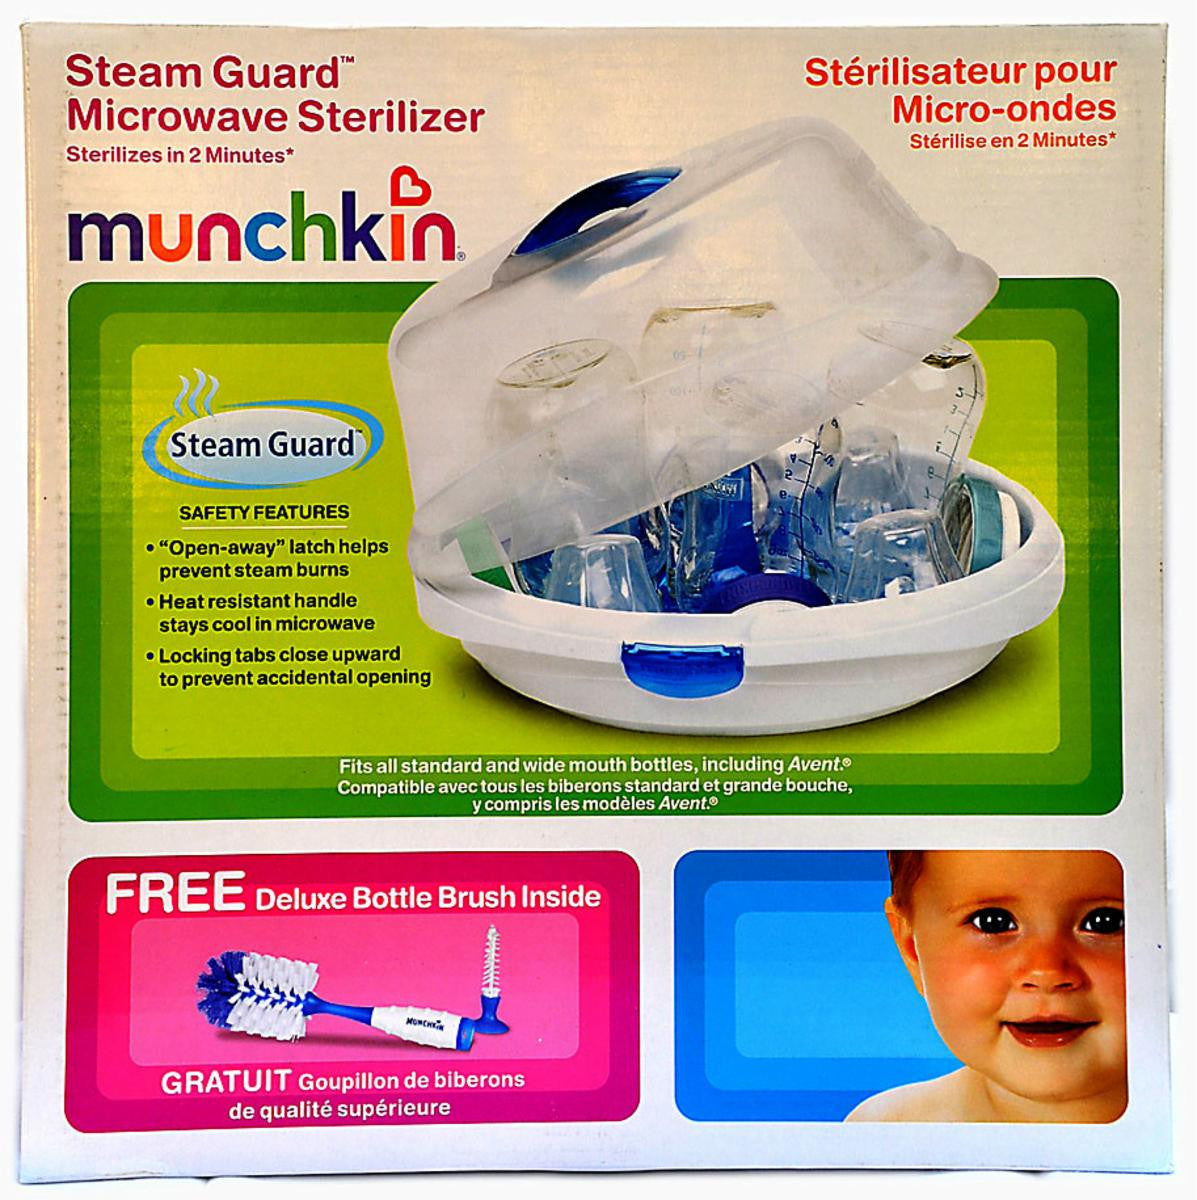 Microwave Sterilizer with Brush Included by Munchkin